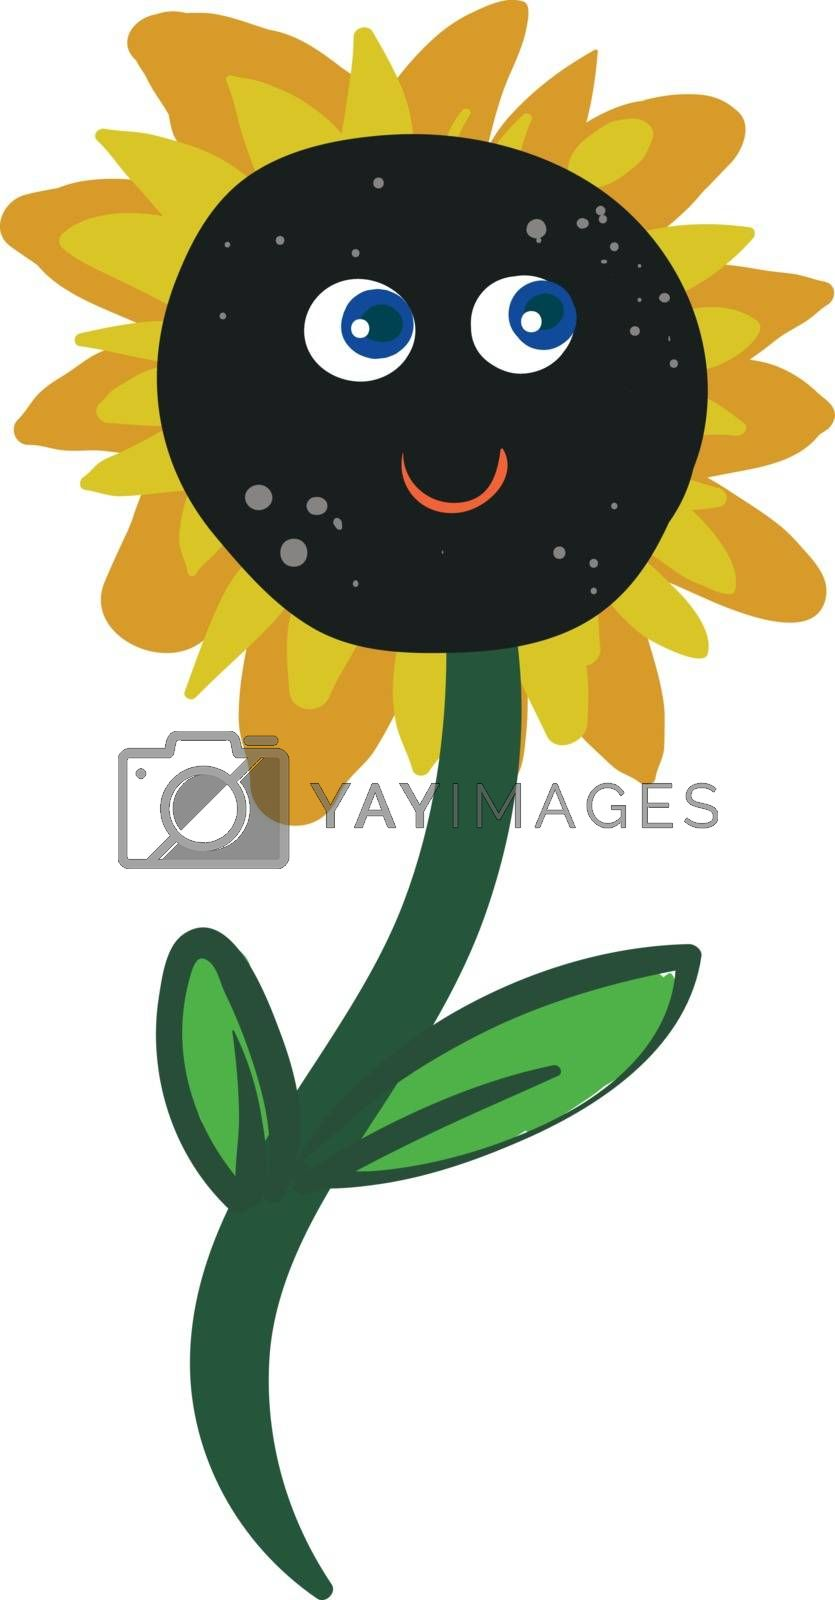 Royalty free image of Cartoon funny happy sunflower vector or color illustration by Morphart